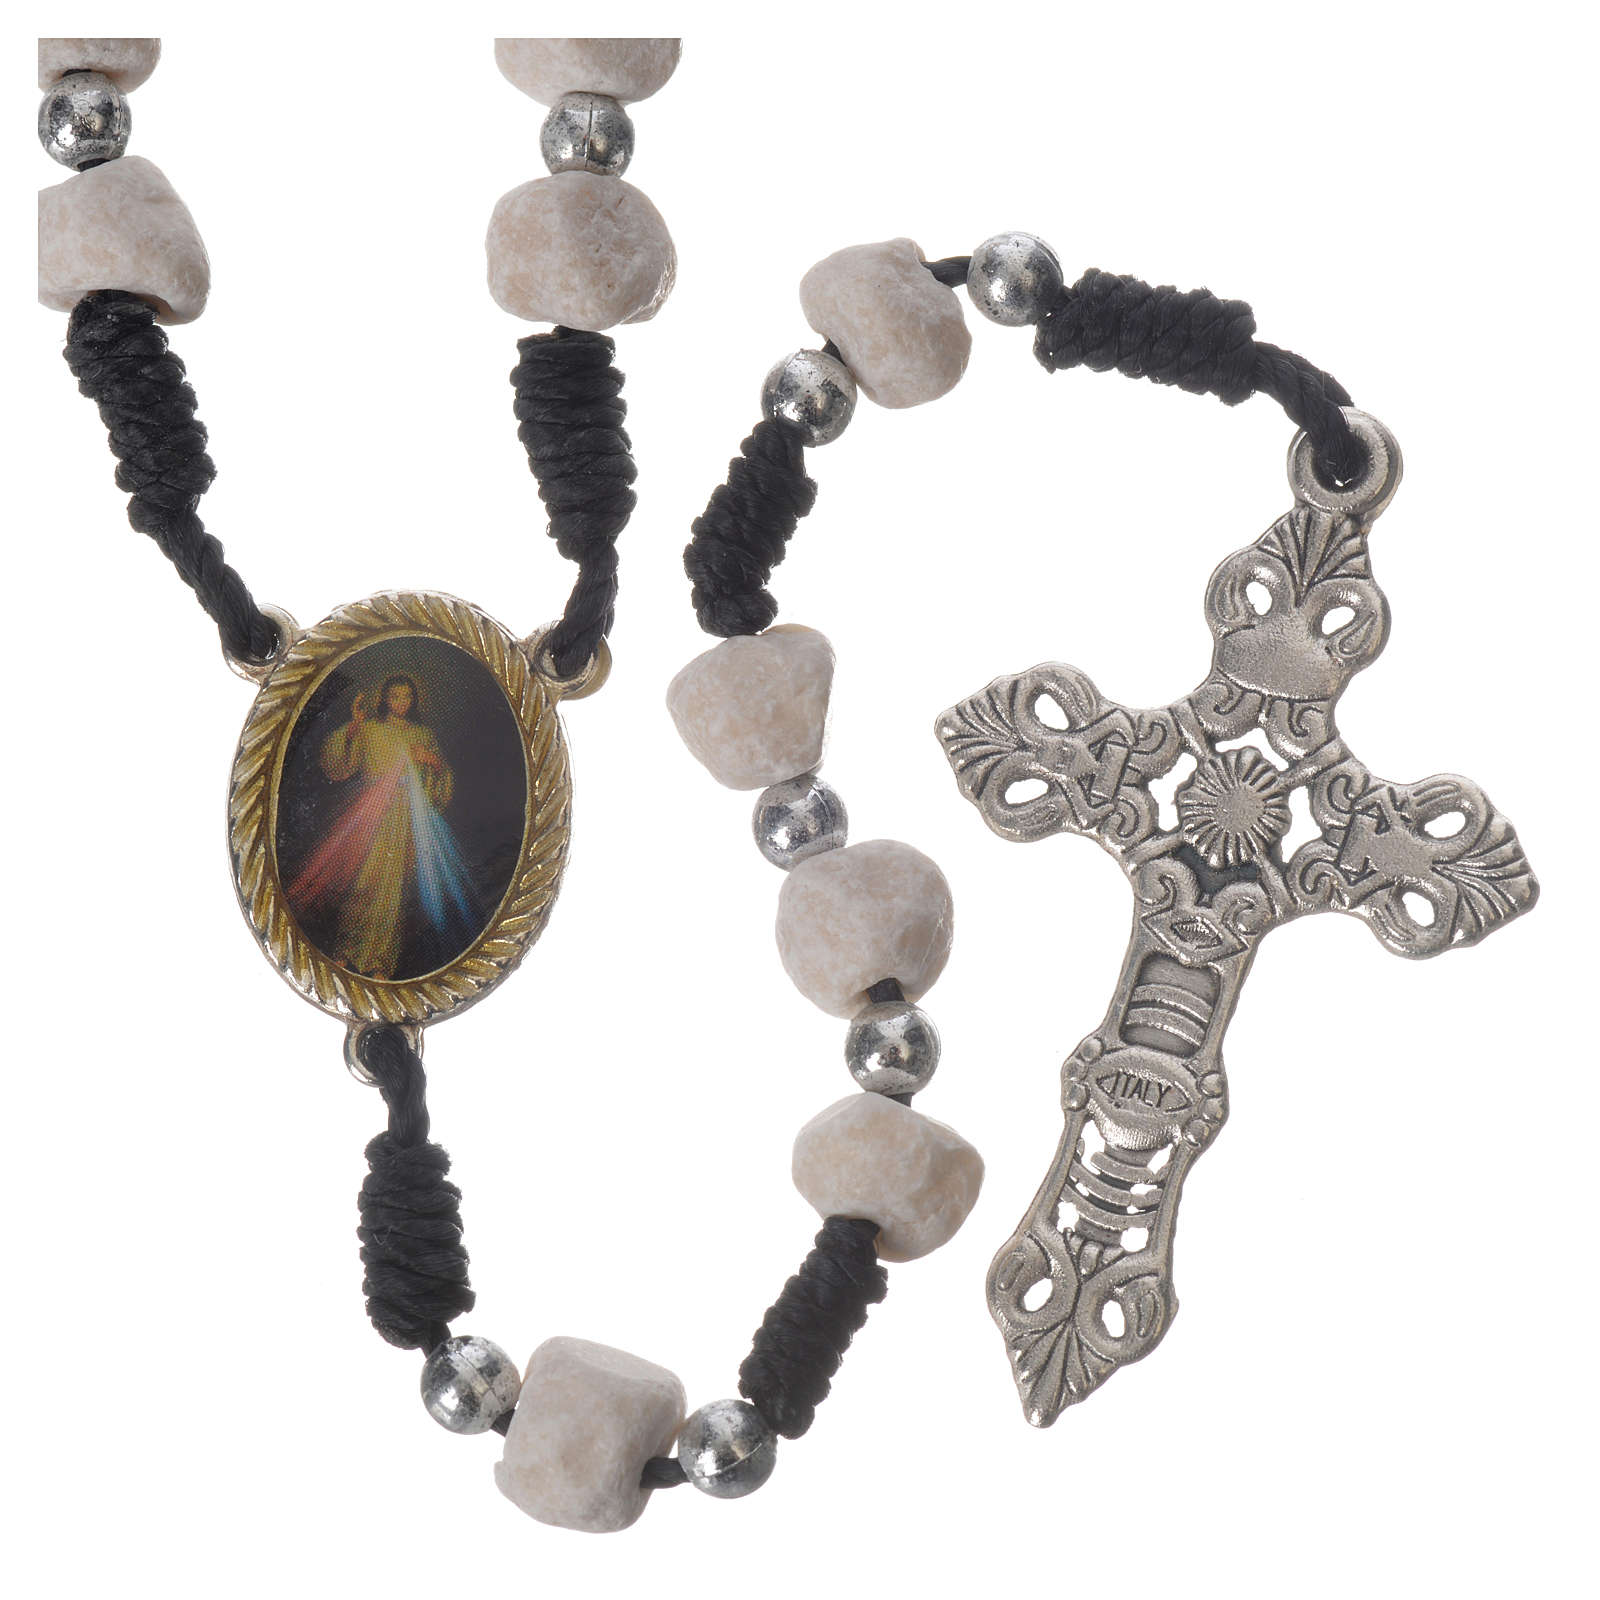 Rosary beads Medjugorje stone and string 4